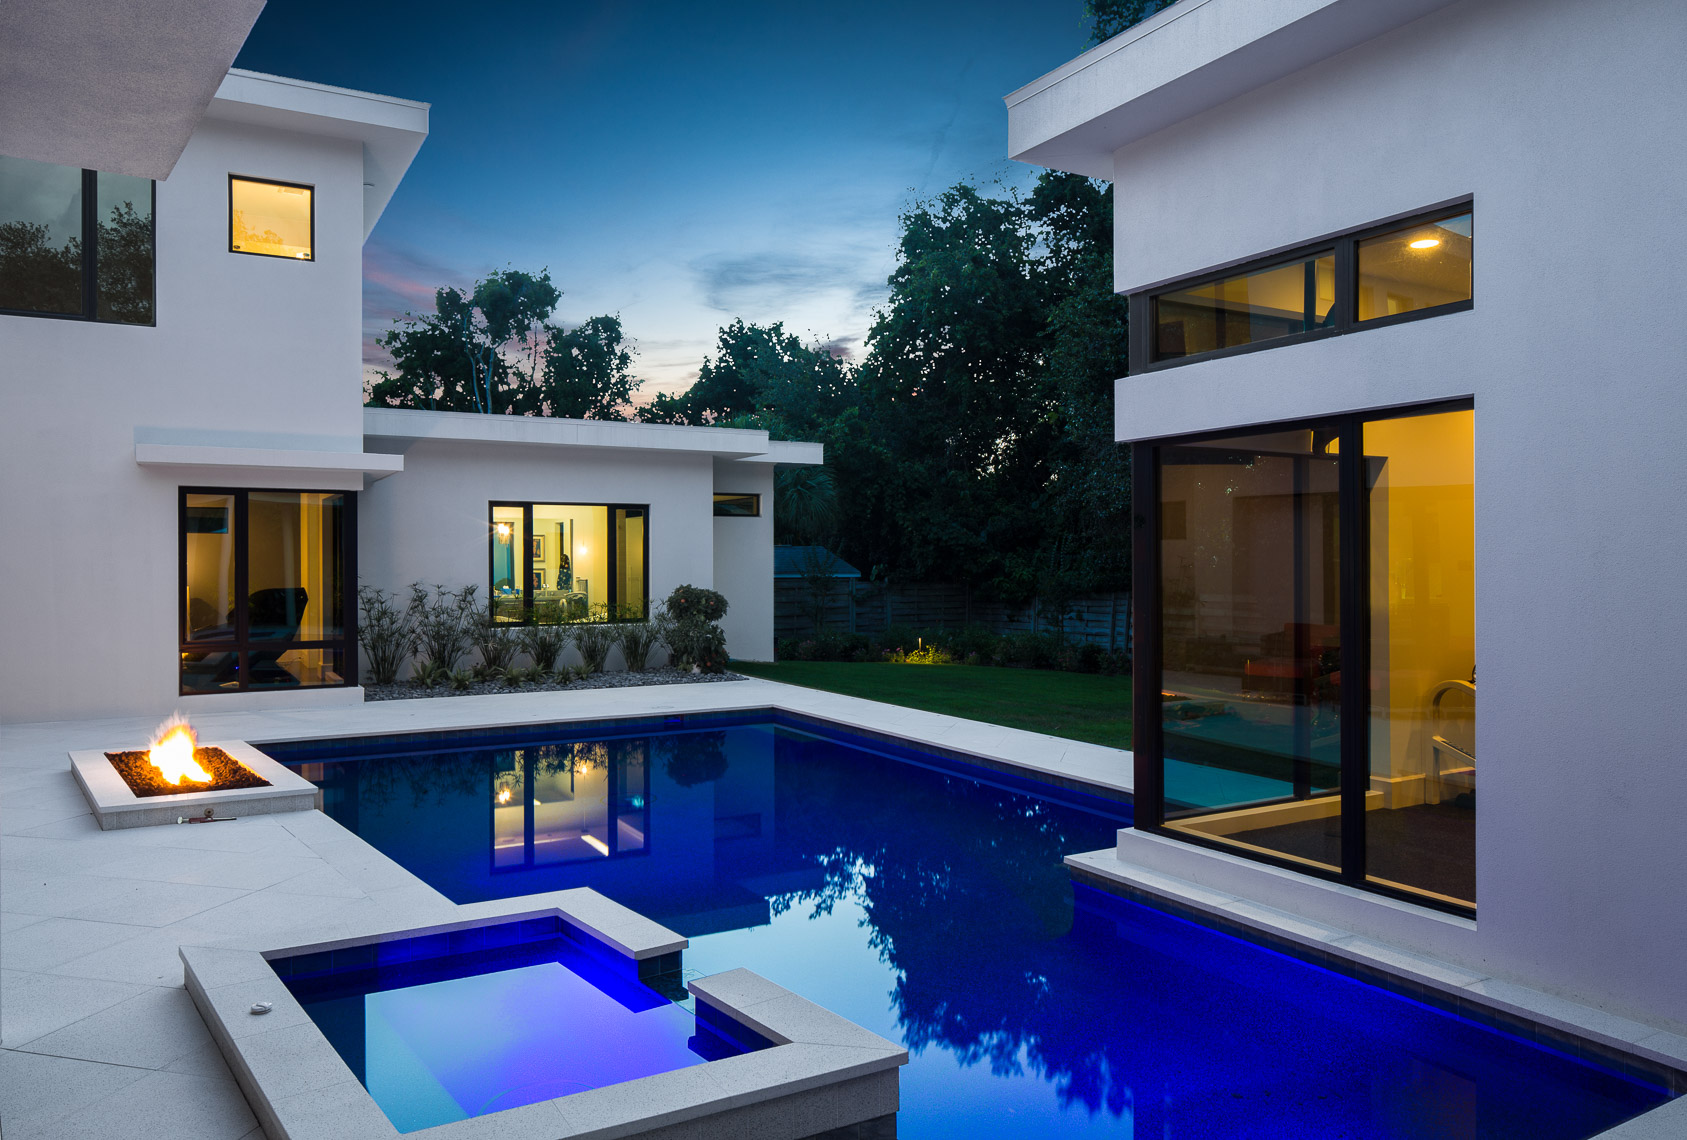 Modern Home - Mark Borosch Photography - Sarasota, FL